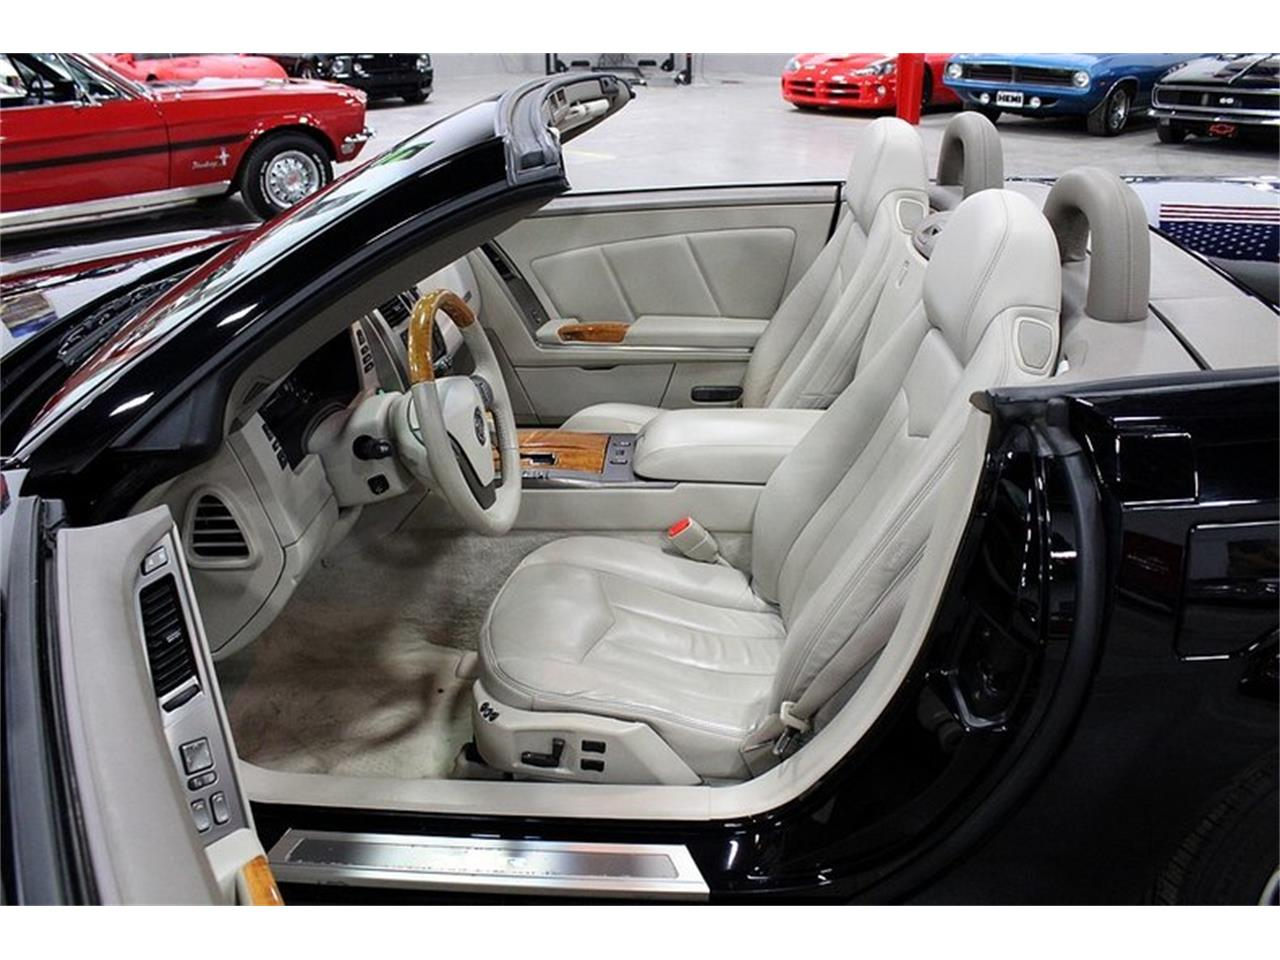 Large Picture of '04 Cadillac XLR located in Kentwood Michigan - $32,900.00 Offered by GR Auto Gallery - PUP2